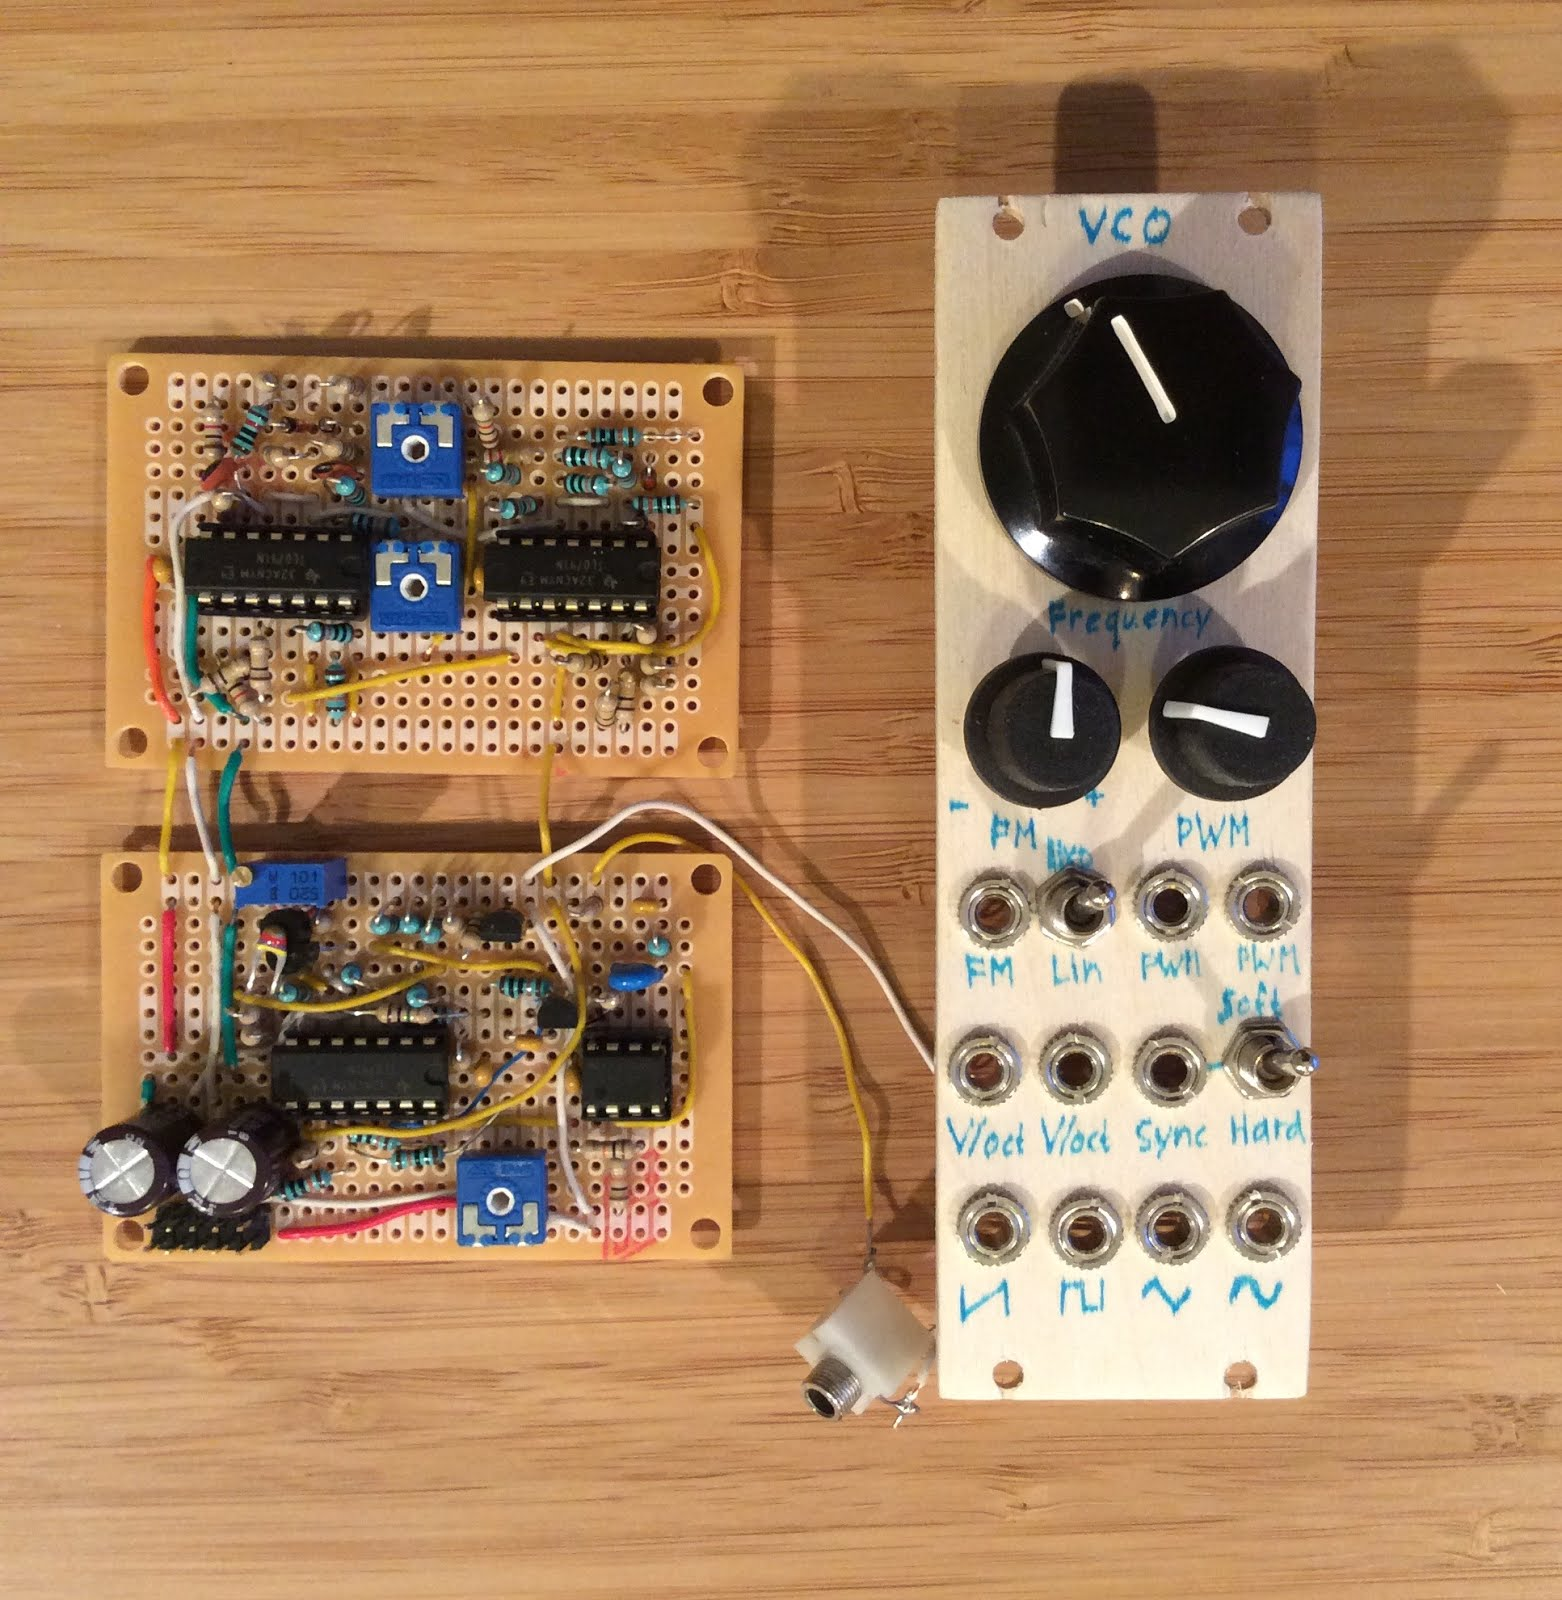 Kassutronics Vco Part 1 Core Voltage Divider More Engineer Equations Diy Synth Schematics Built Circuit